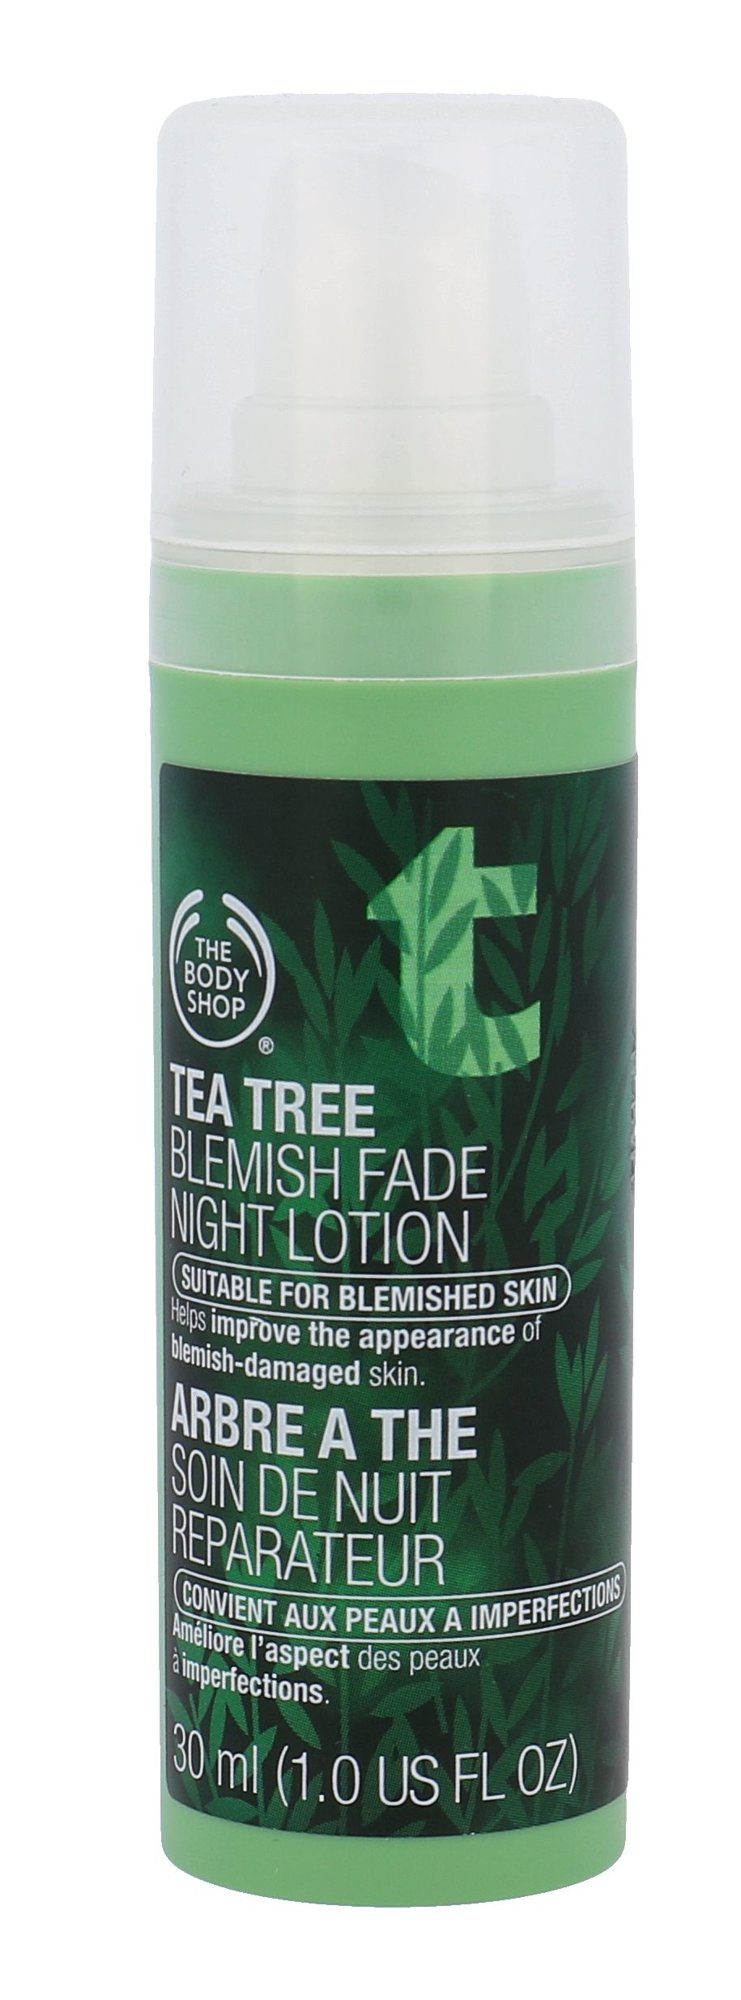 The Body Shop Tea Tree Cosmetic 30ml